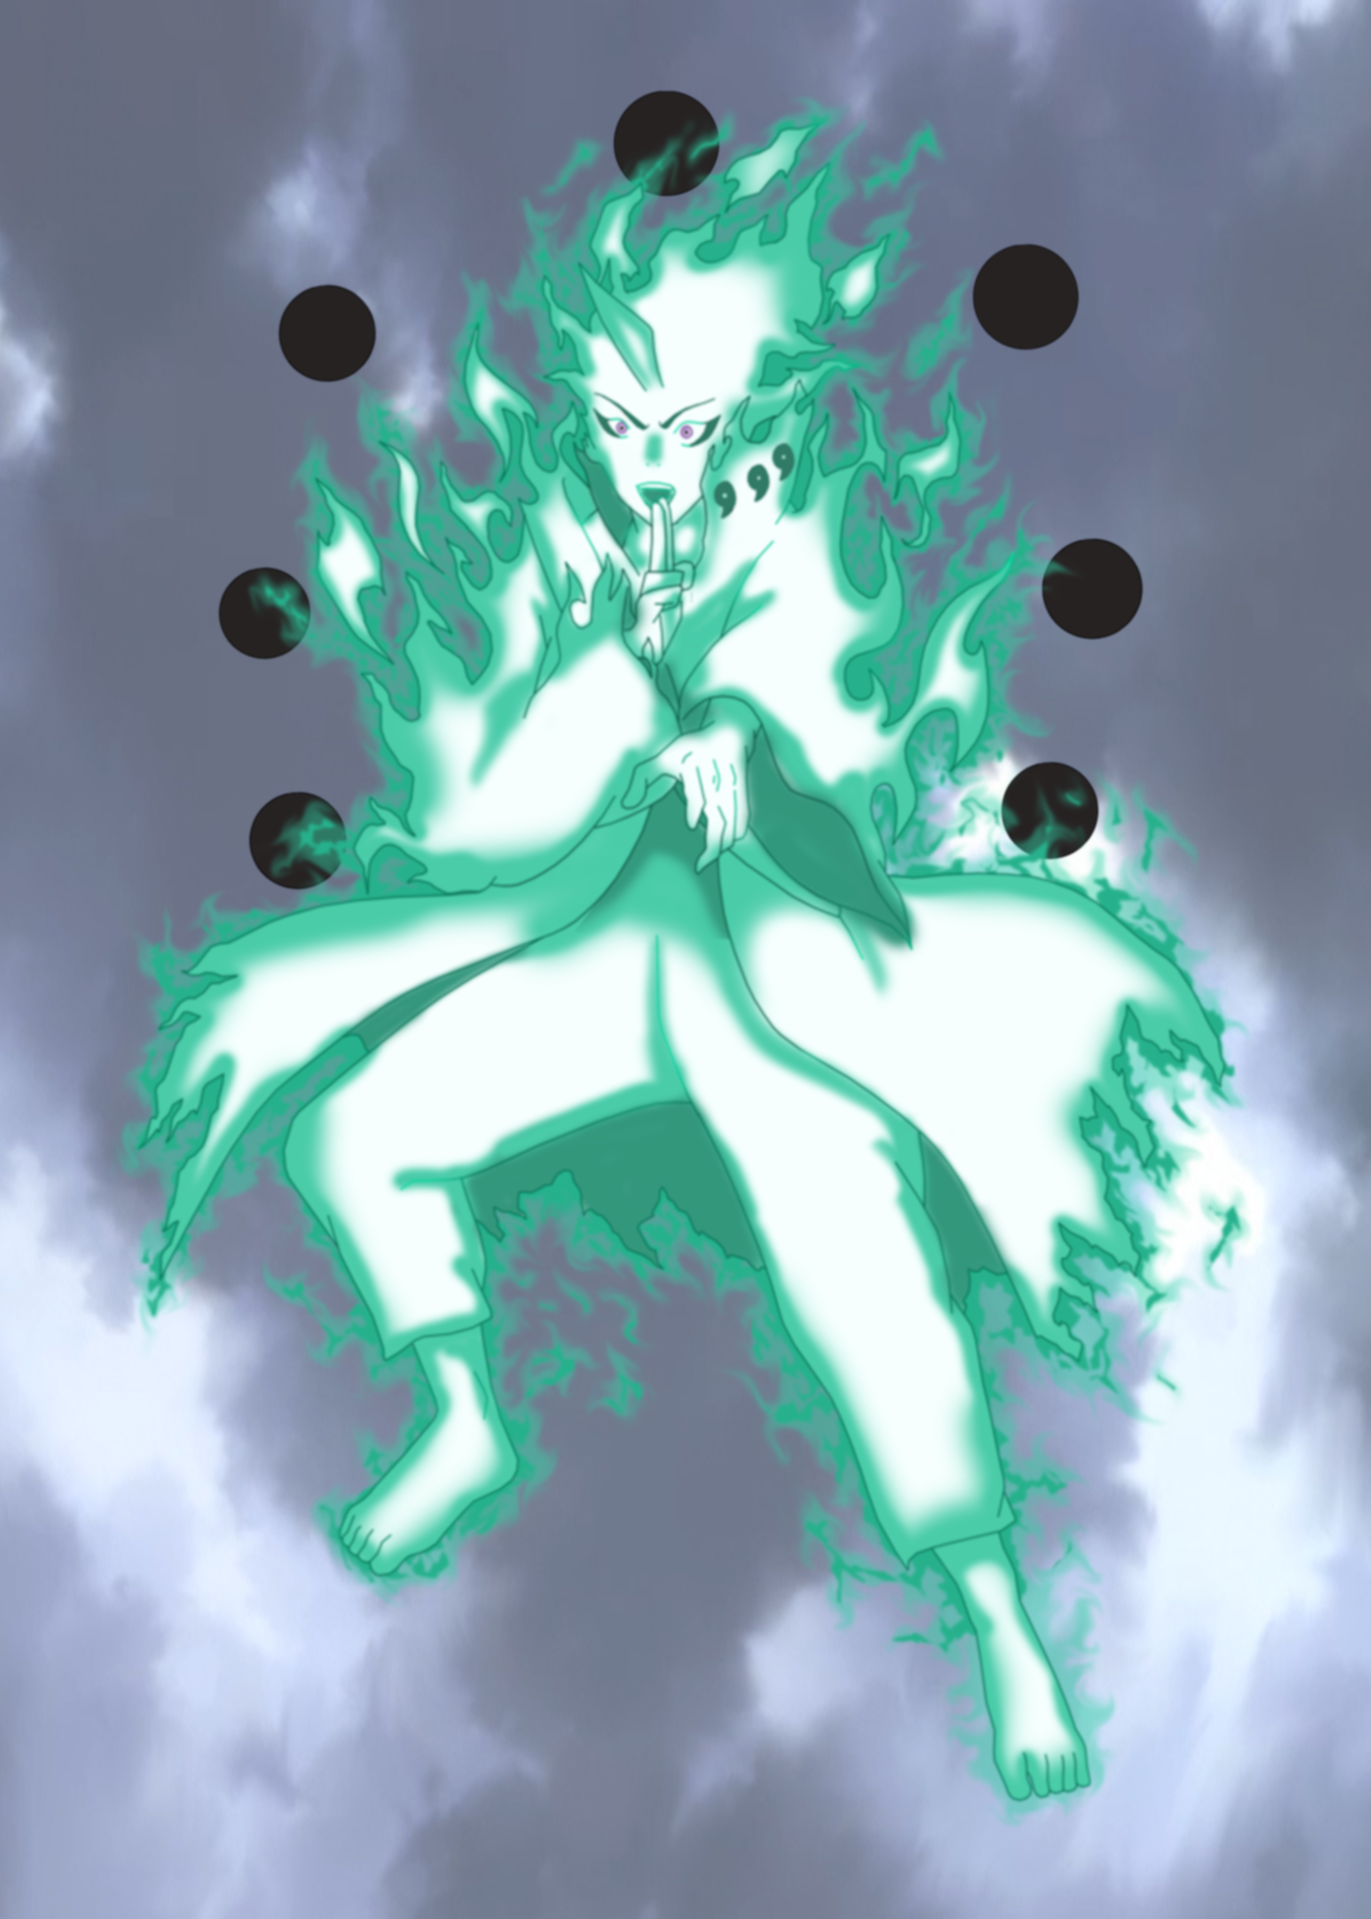 Los Mejores Grupos U Organizaciones Del Anime 335638 besides List of Naruto characters likewise Lightning Release  Black Panther moreover Tenseigan Chakra Mode together with Showthread. on uzumaki boruto abilities